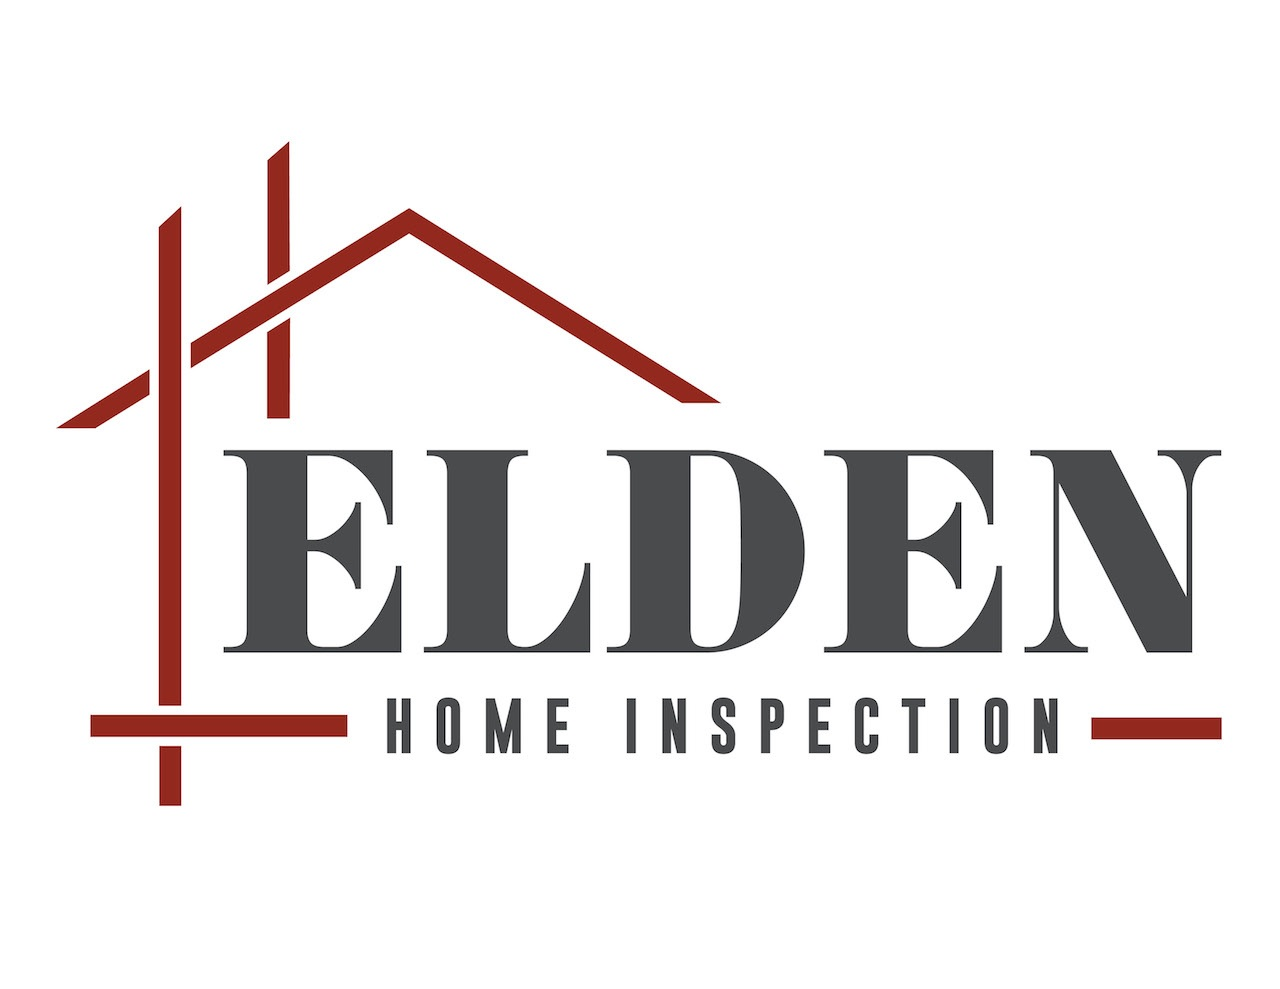 Elden Home Inspection